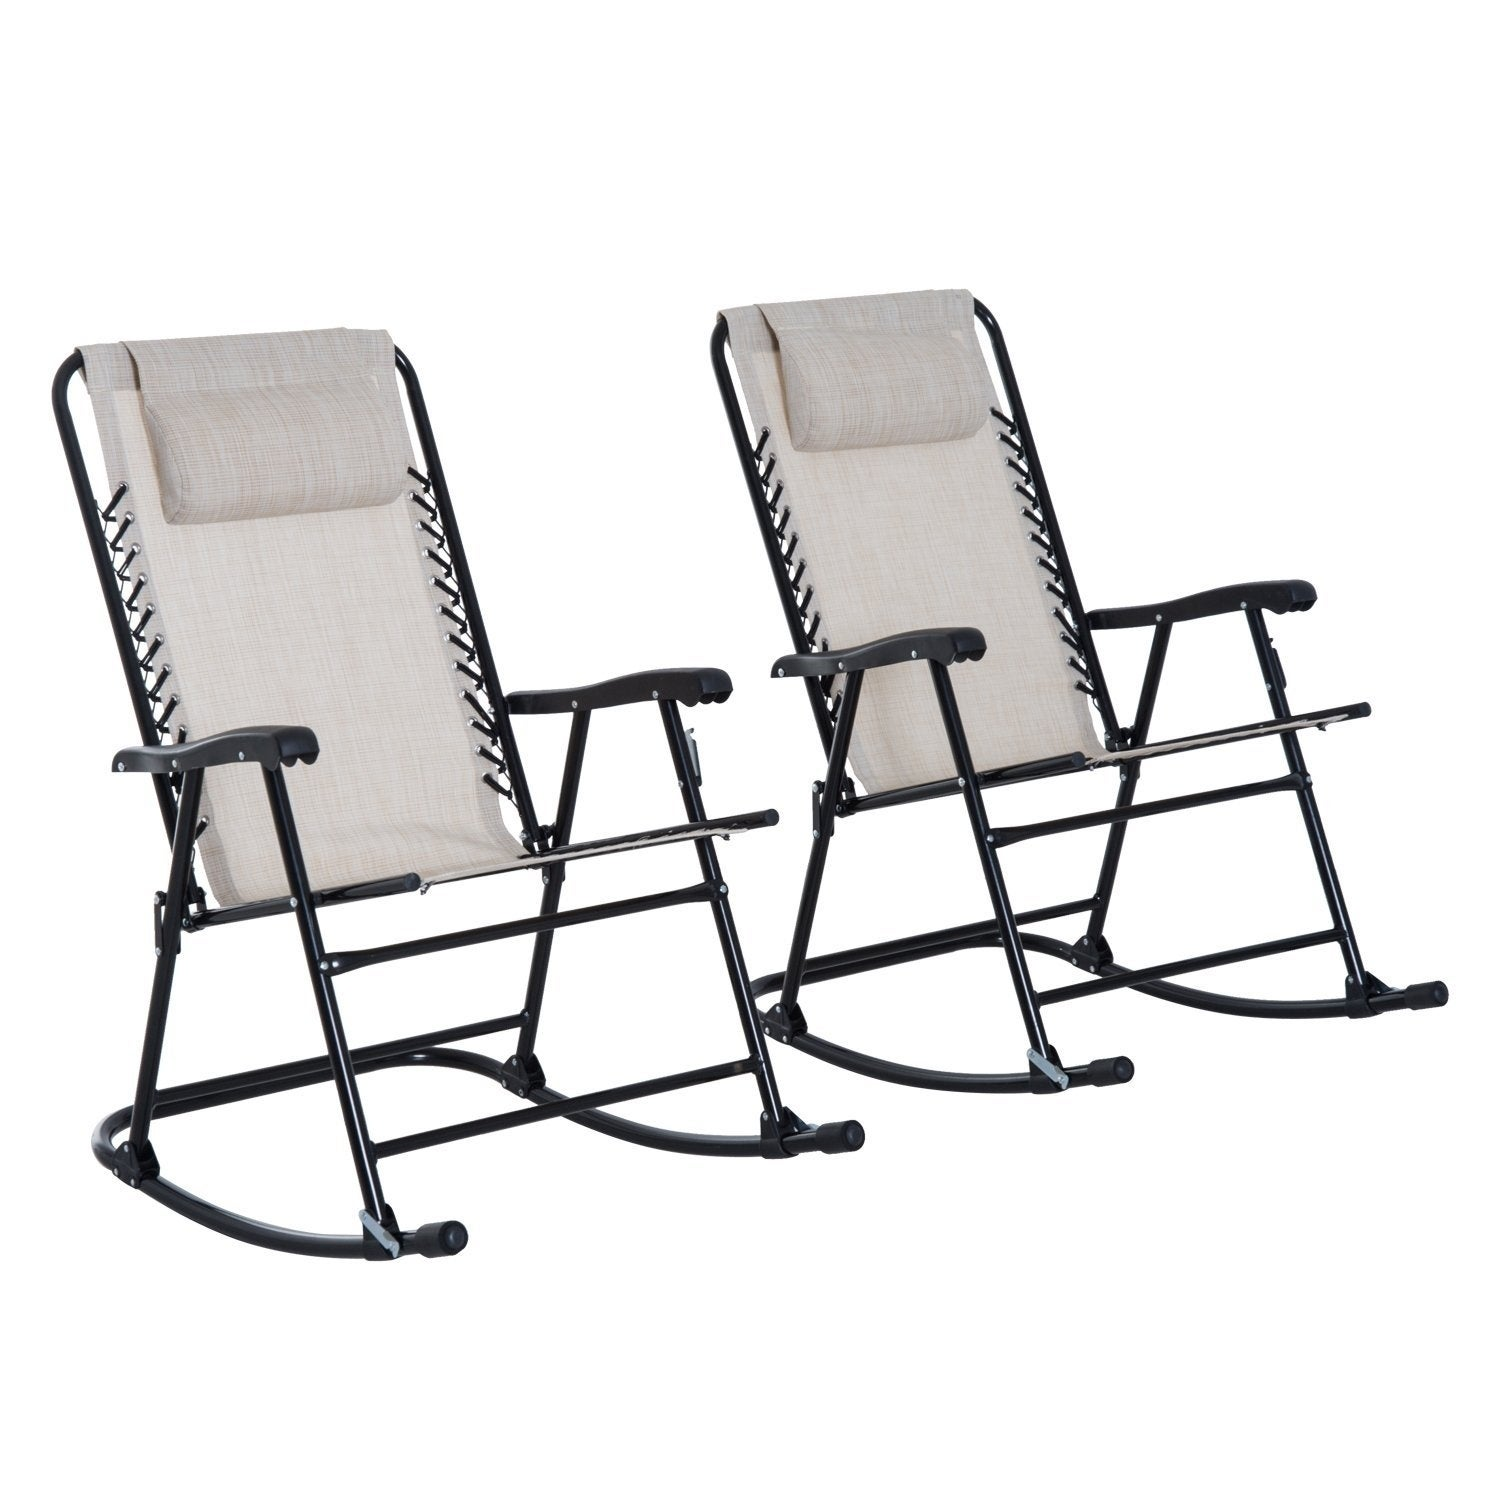 Repair Patio Furniture Mesh Ointment: Outsunny Mesh Outdoor Patio Folding 2-Piece Rocking Chair